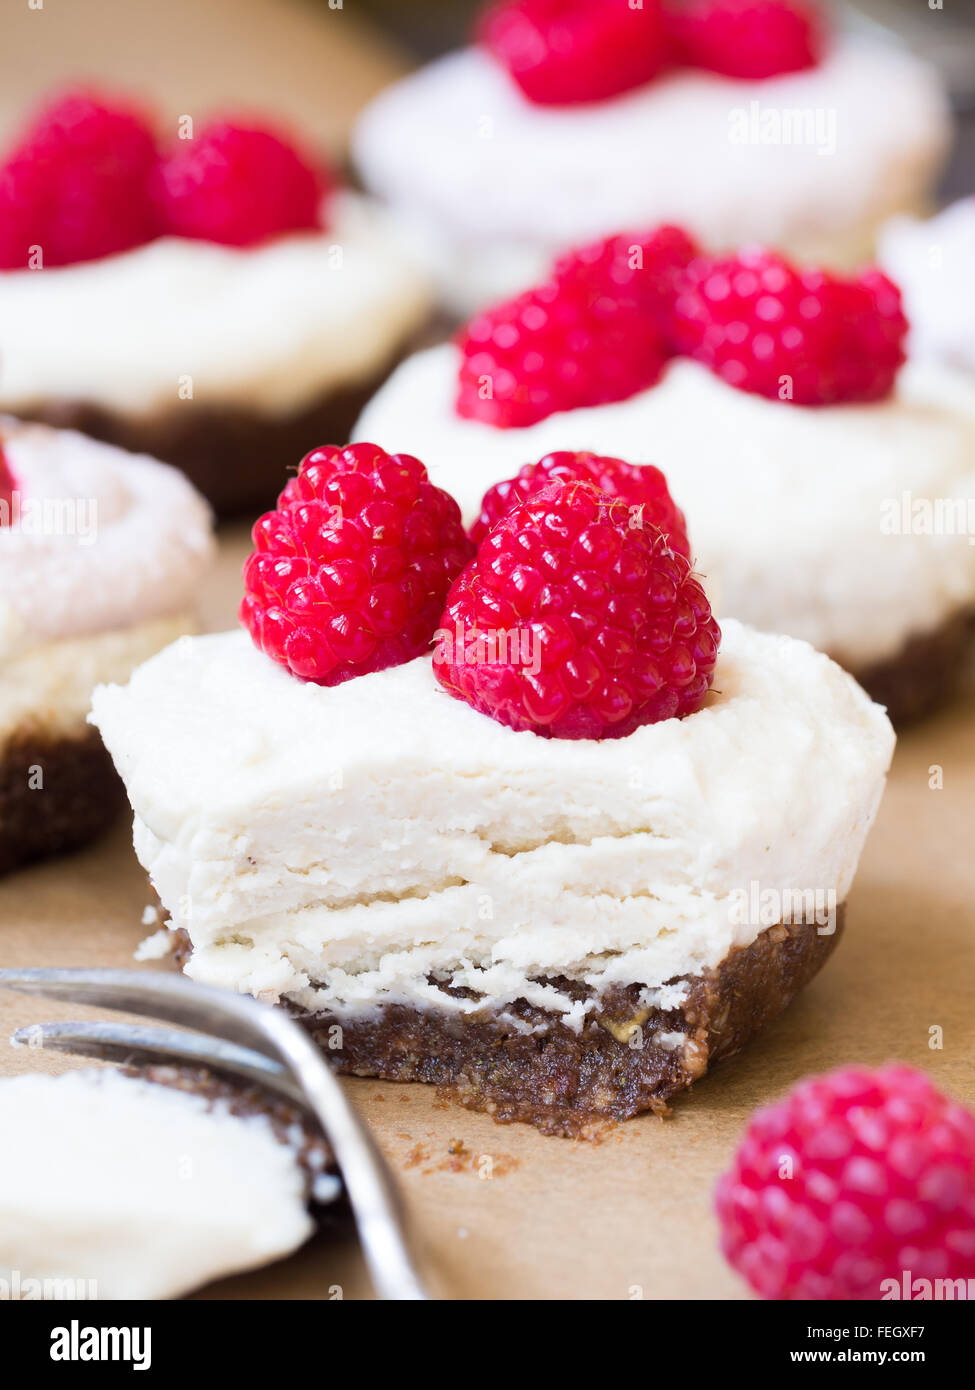 Raw vegan mini 'cheesecakes' made of cashew nuts, coconut cream and dates, served with raspberries. Close - Stock Image